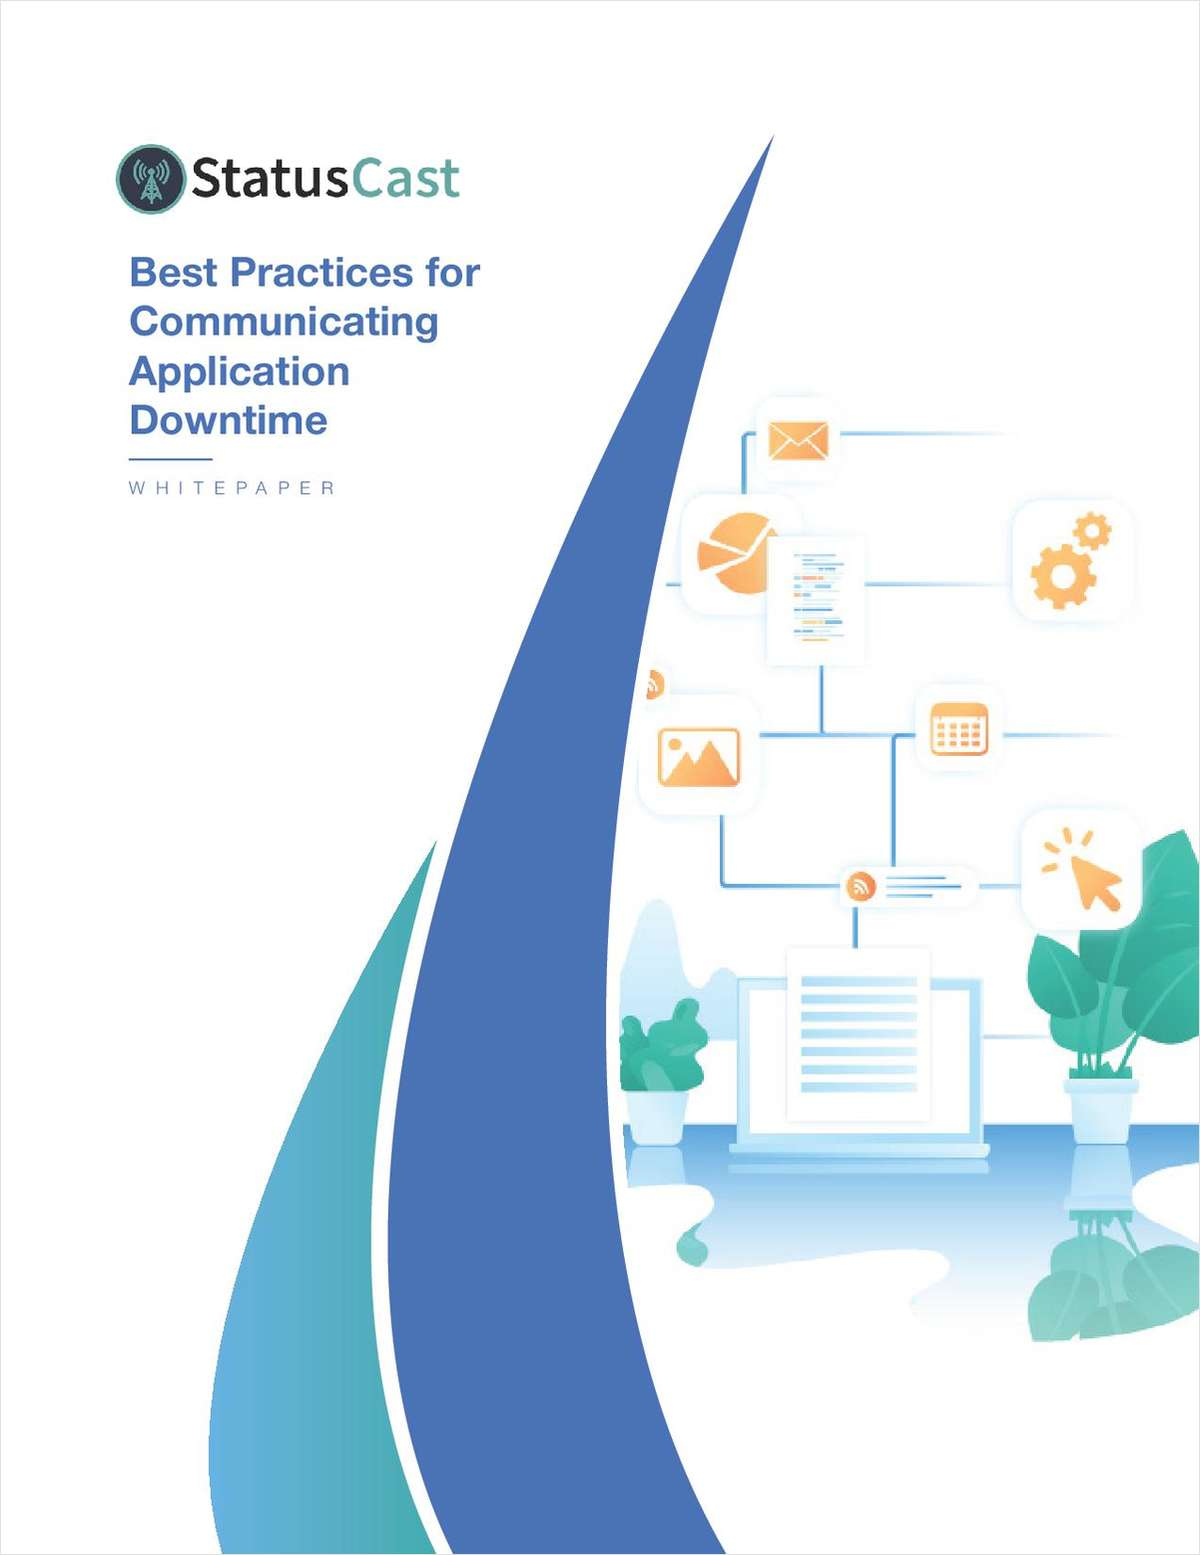 Best Practices for Communication Application Downtime